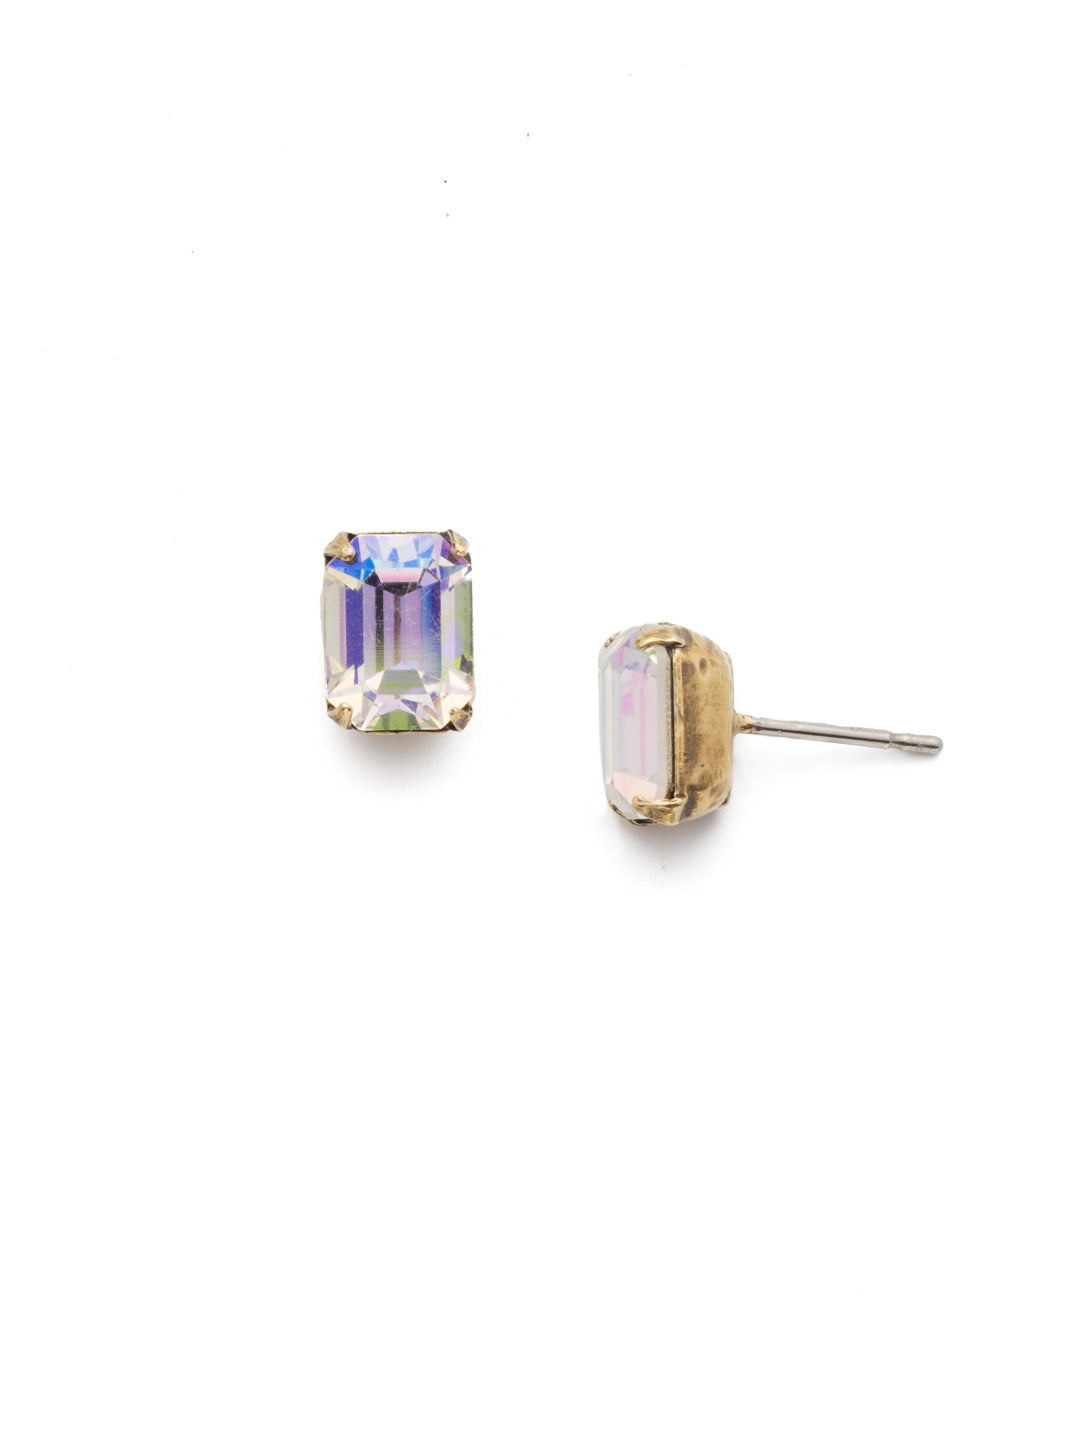 Mini Emerald Cut Stud Earring - Sorrelli Essentials - EBY42AGCAB